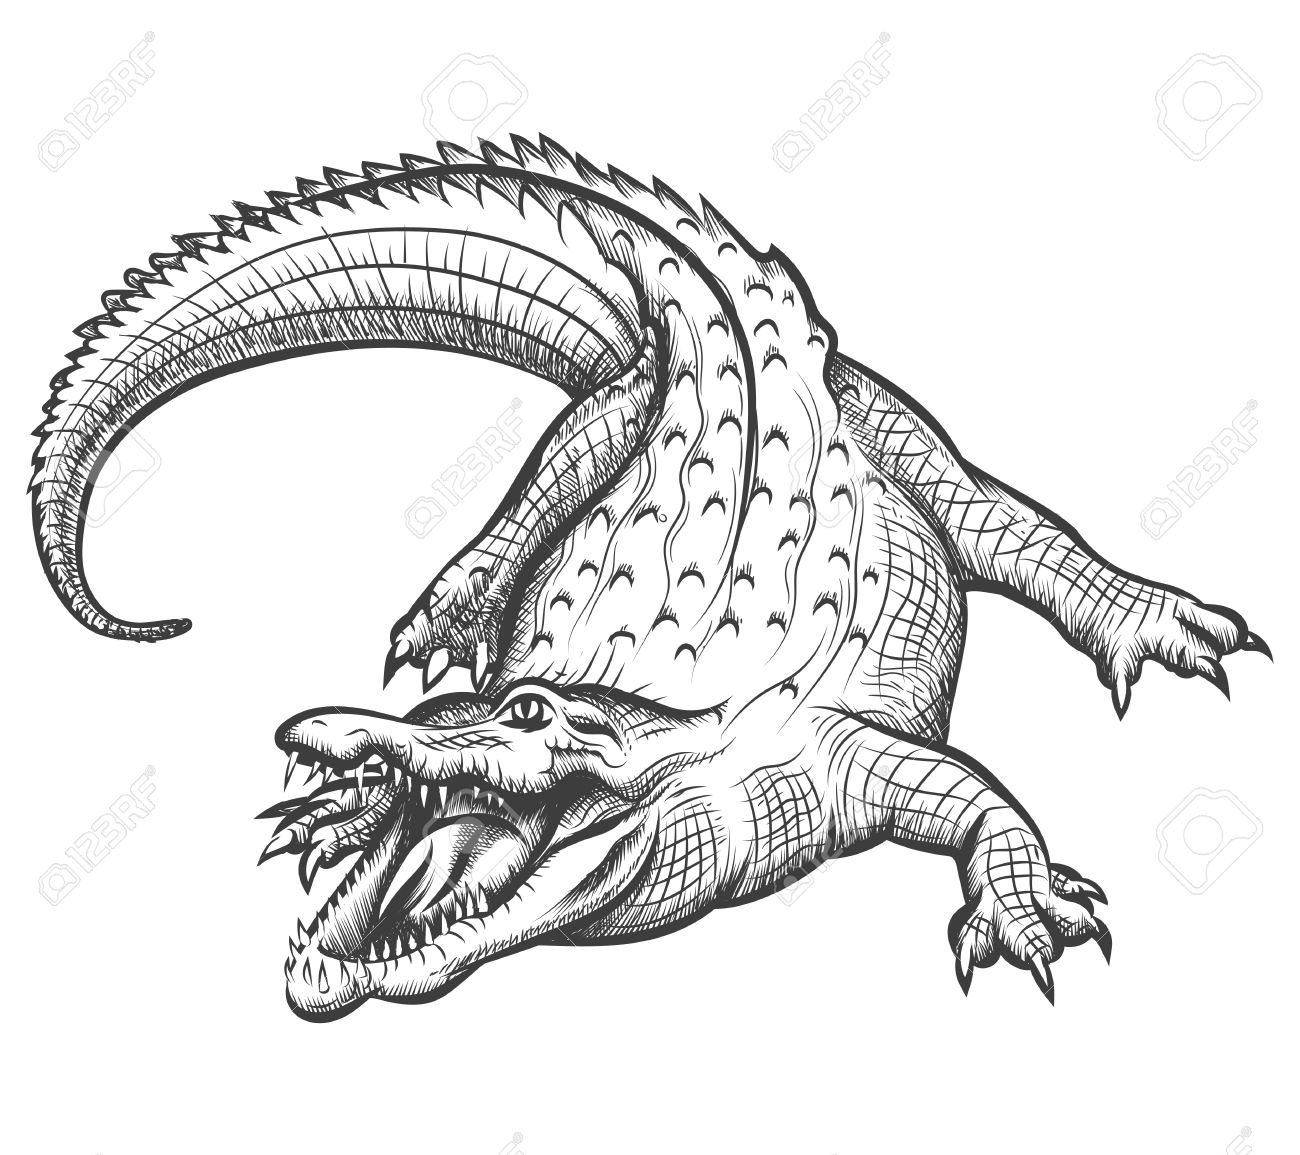 Crocodile Black And White | Free download best Crocodile Black And ... for Clipart Crocodile Black And White  197uhy